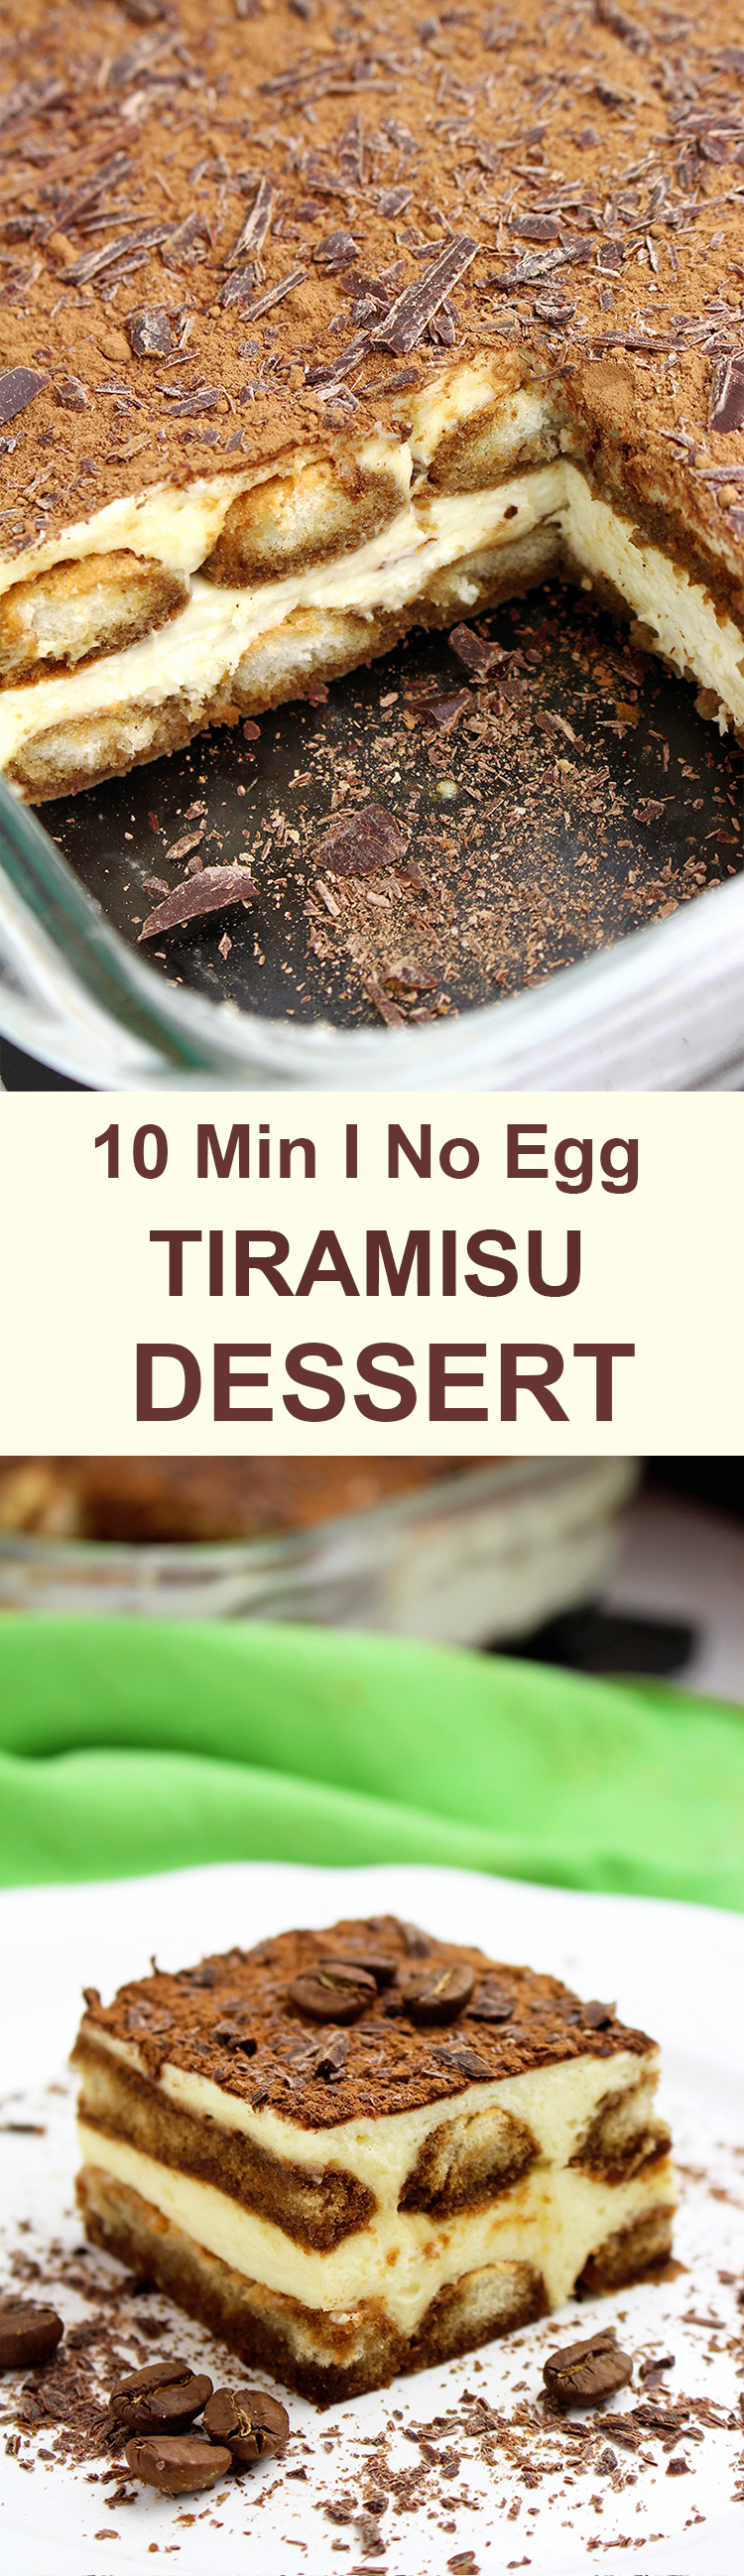 Easy Tiramisu Dessert Recipe Untitled-161